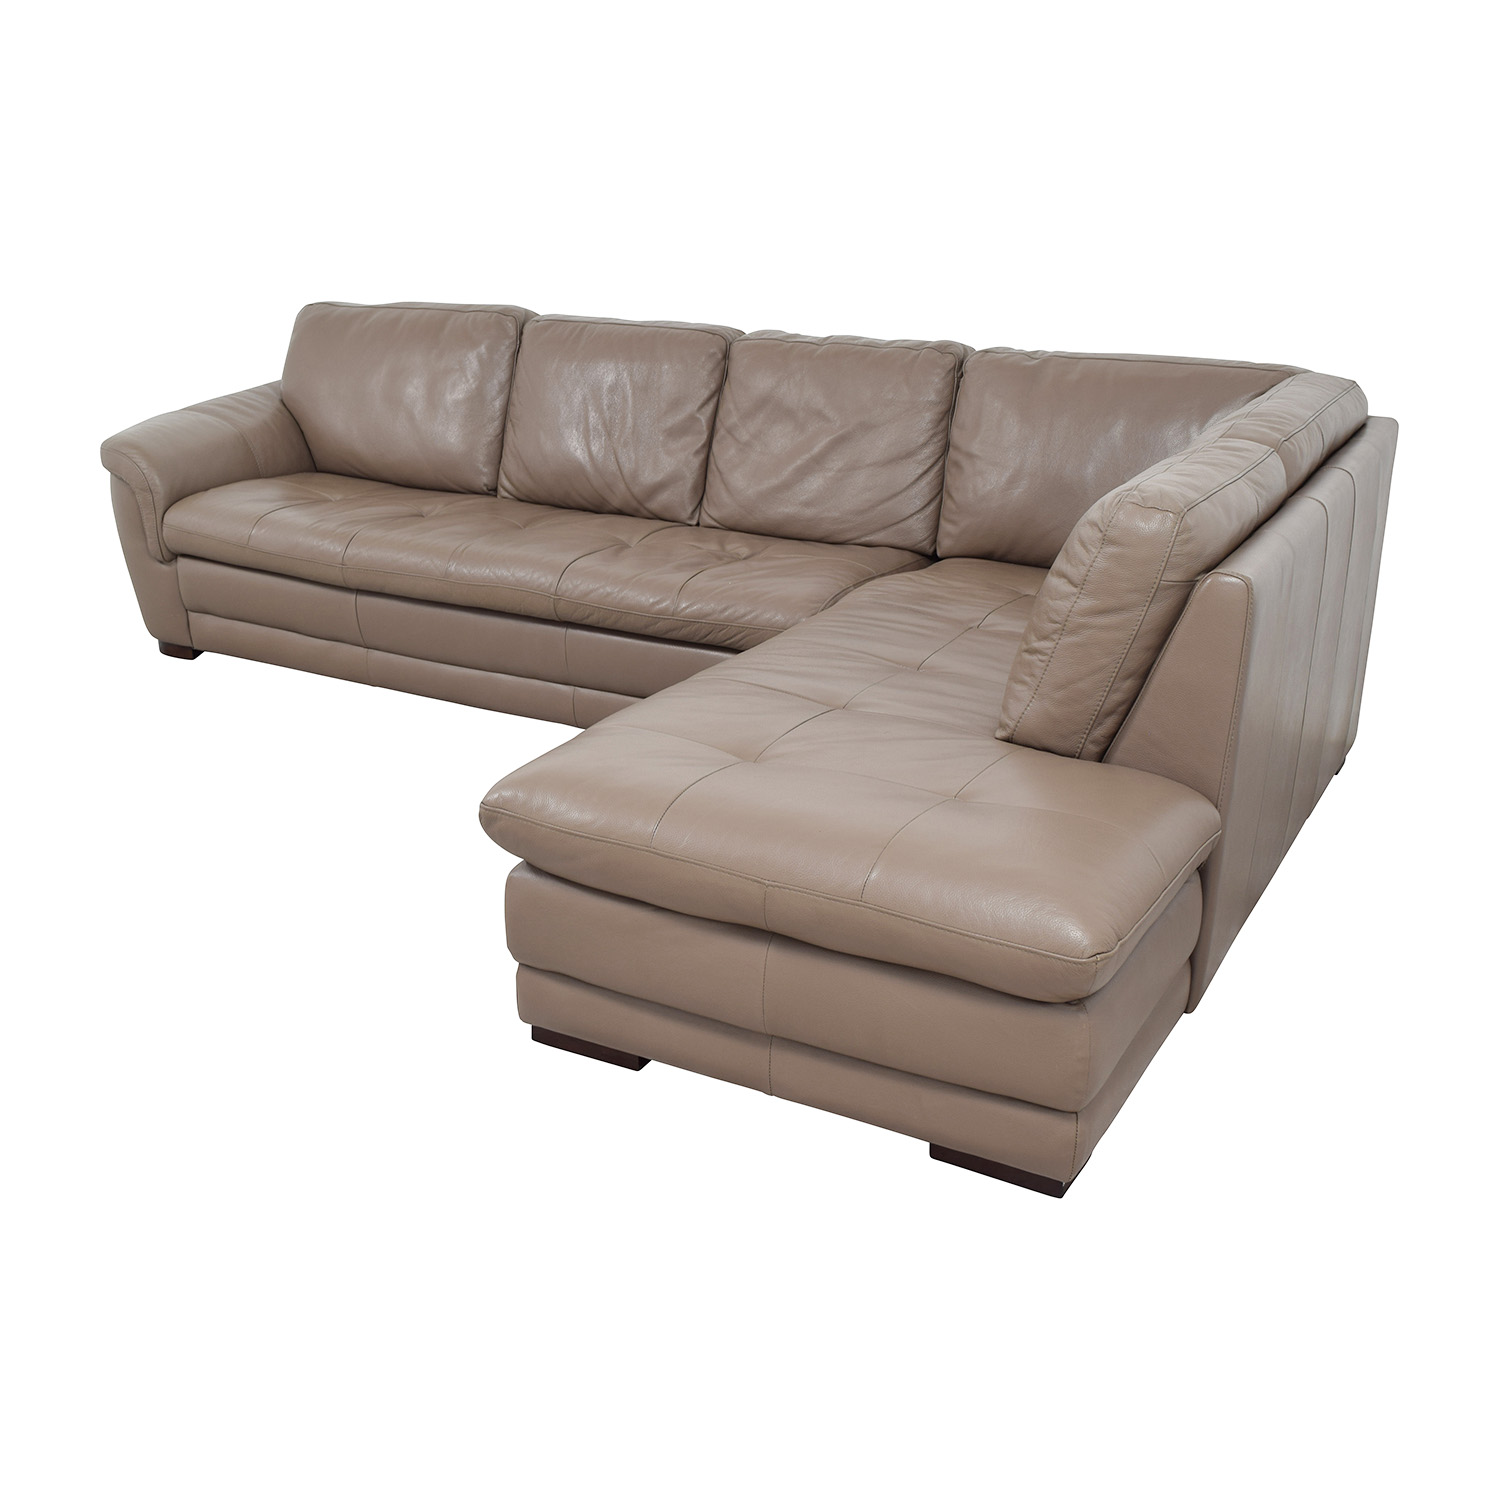 raymour and flanigan sectional sofas crate barrel leather sofa bed amazing